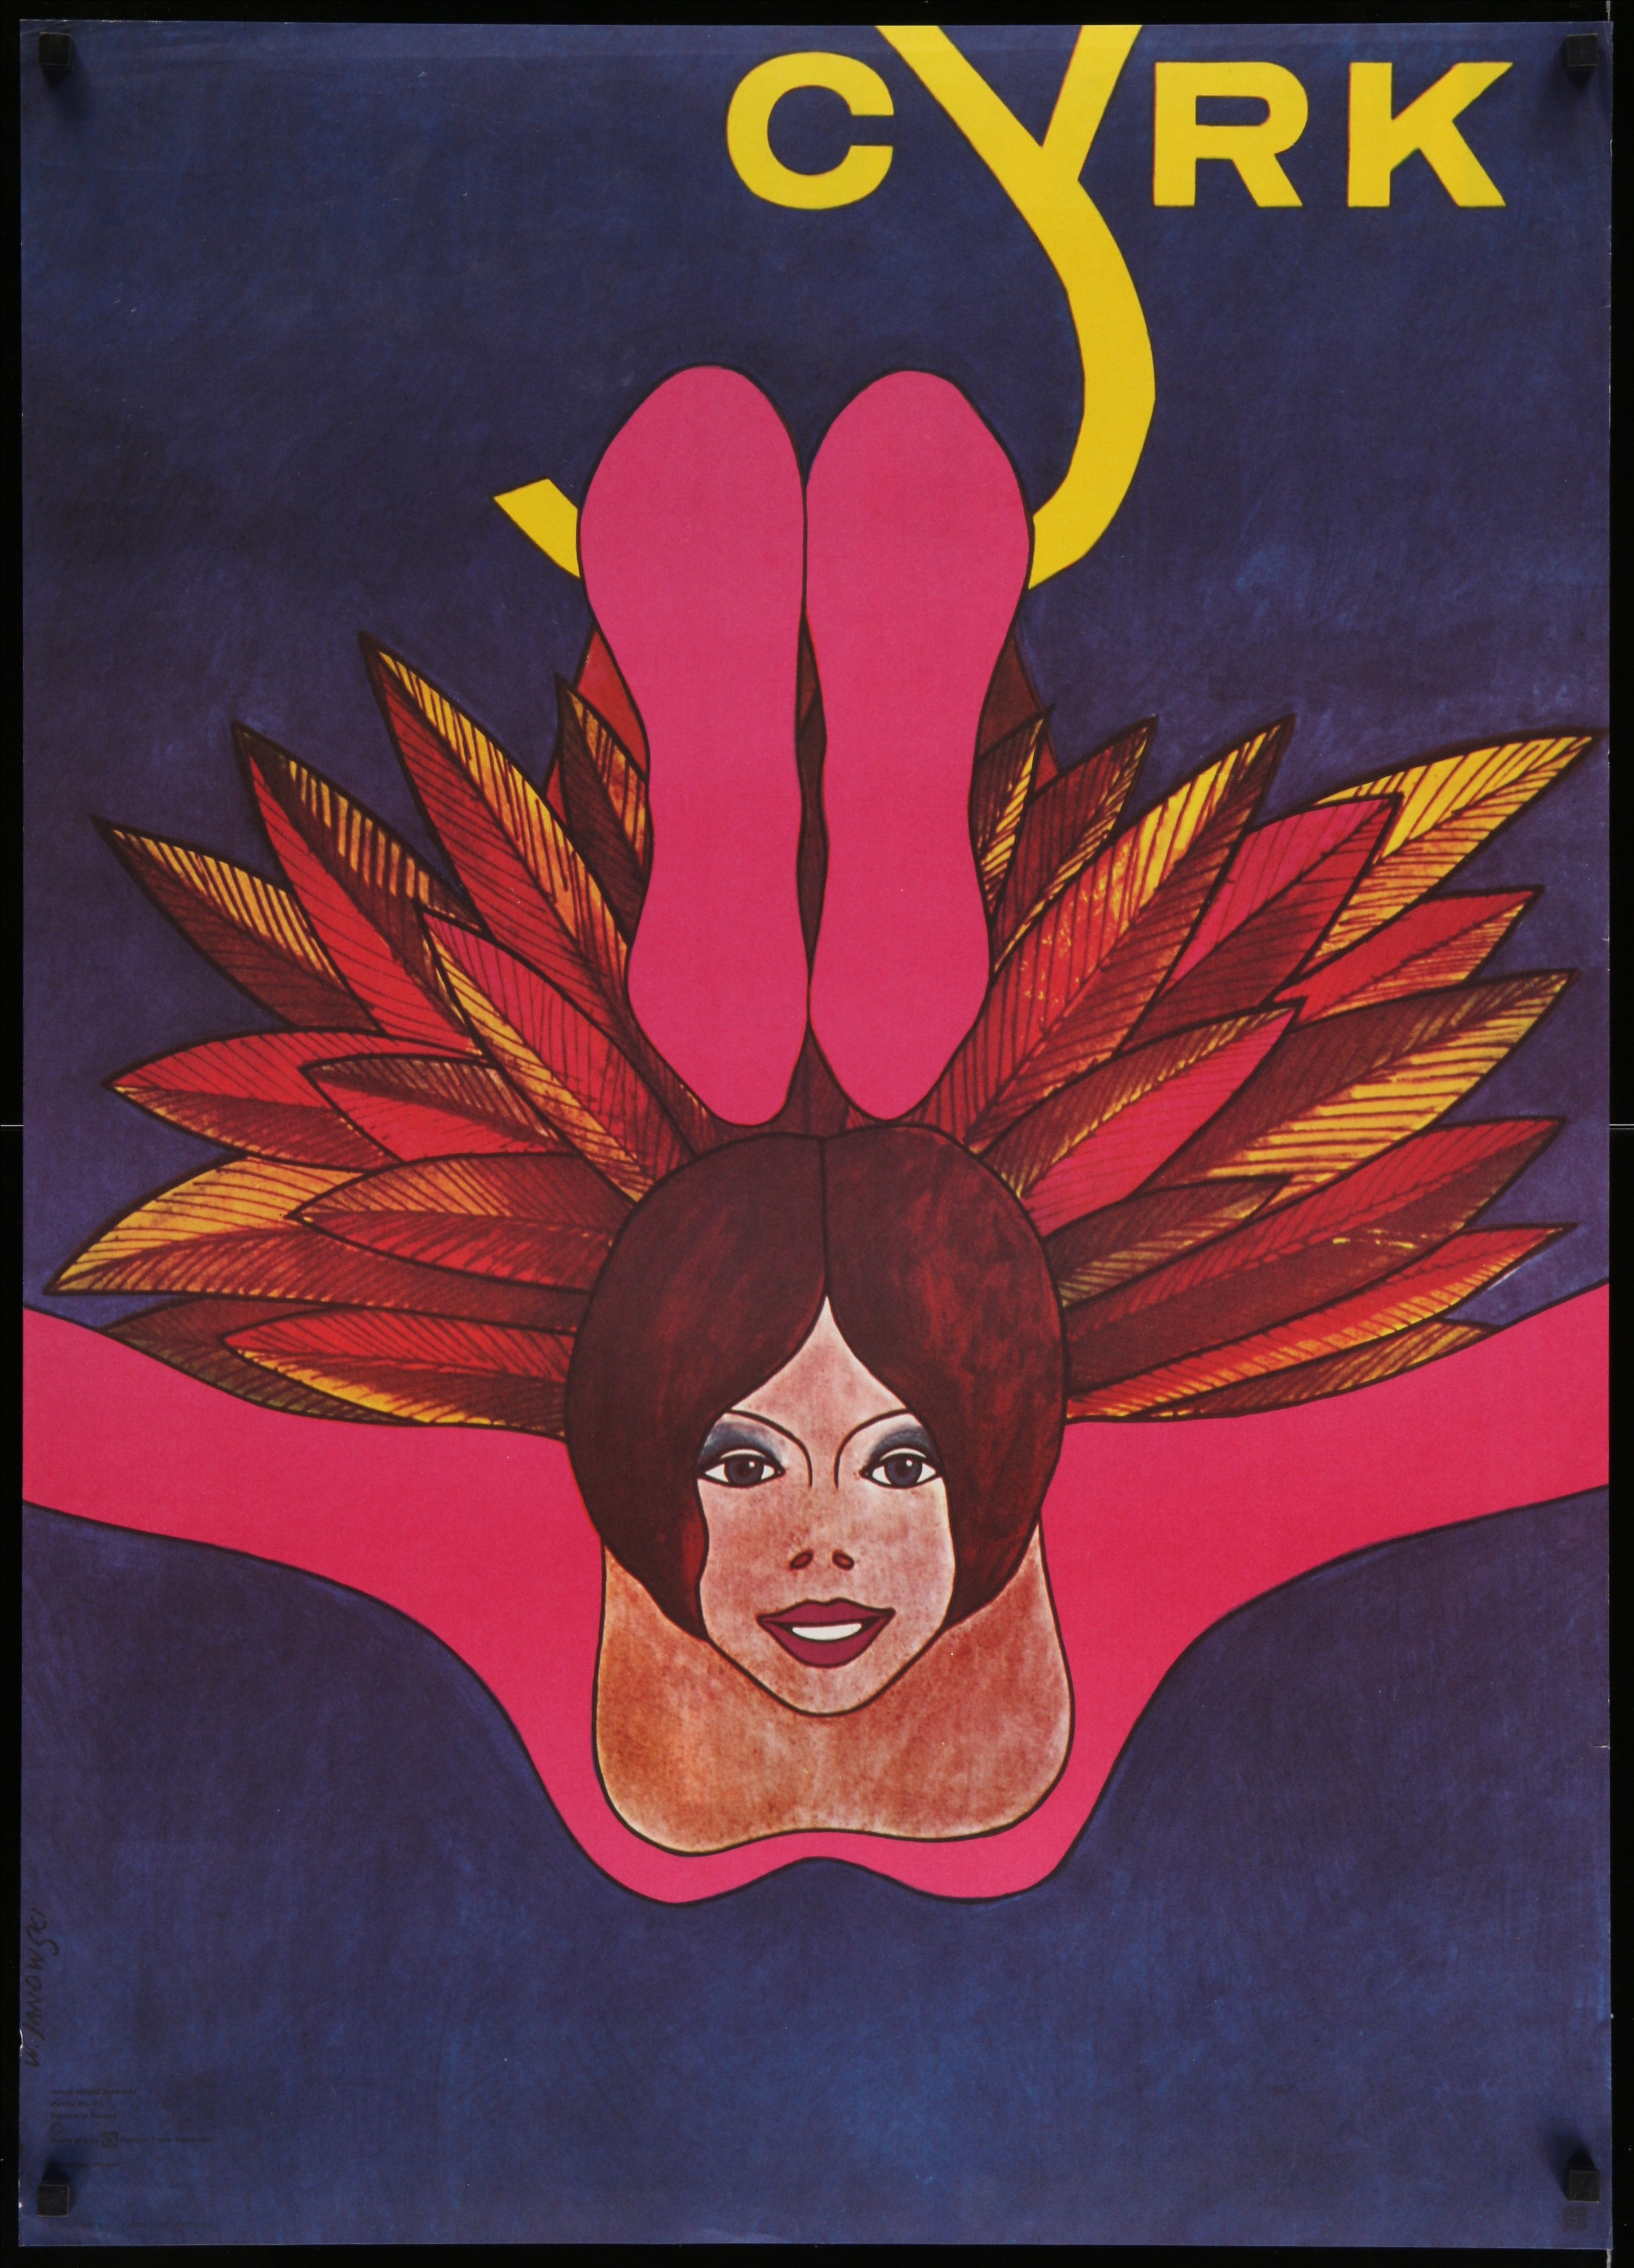 Cyrk Polish Circus Poster 26x36 70s Really Different Art Of Woman With Feathers By Witold Janowski Polish Posters Circus Poster Vintage Poster Art